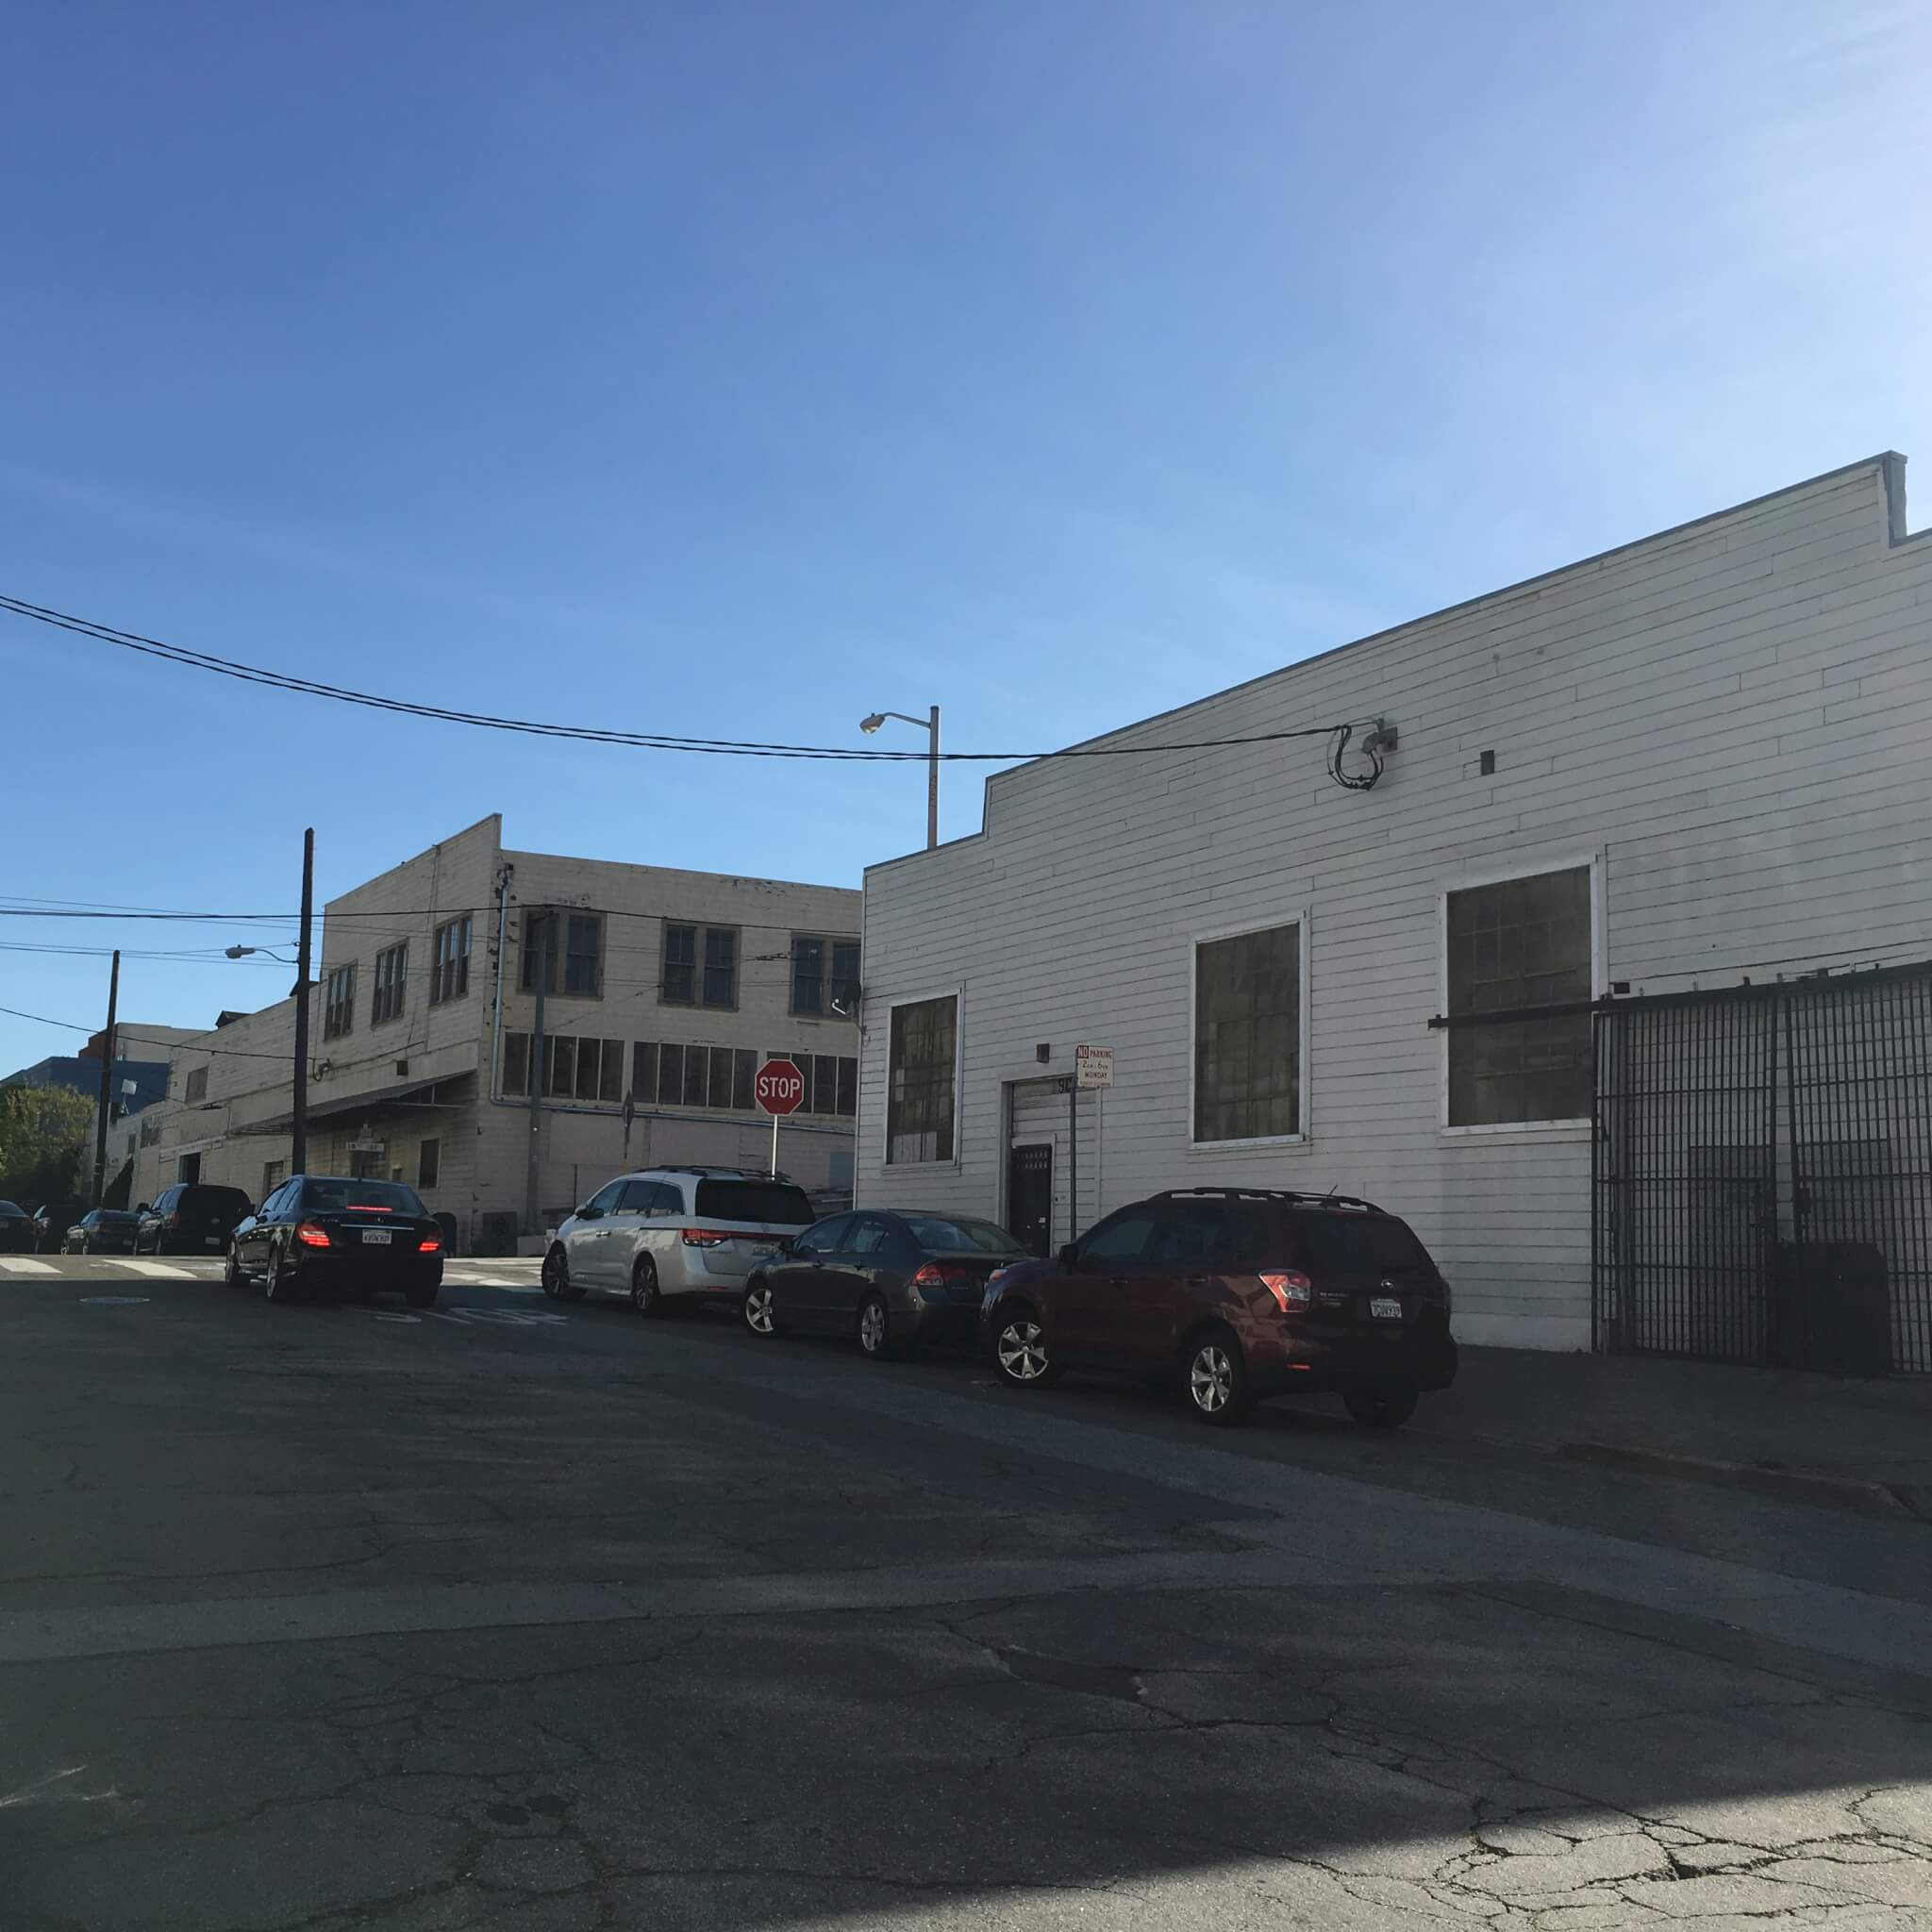 Dogpatch Residents Design Ucsf Housing Potrero View